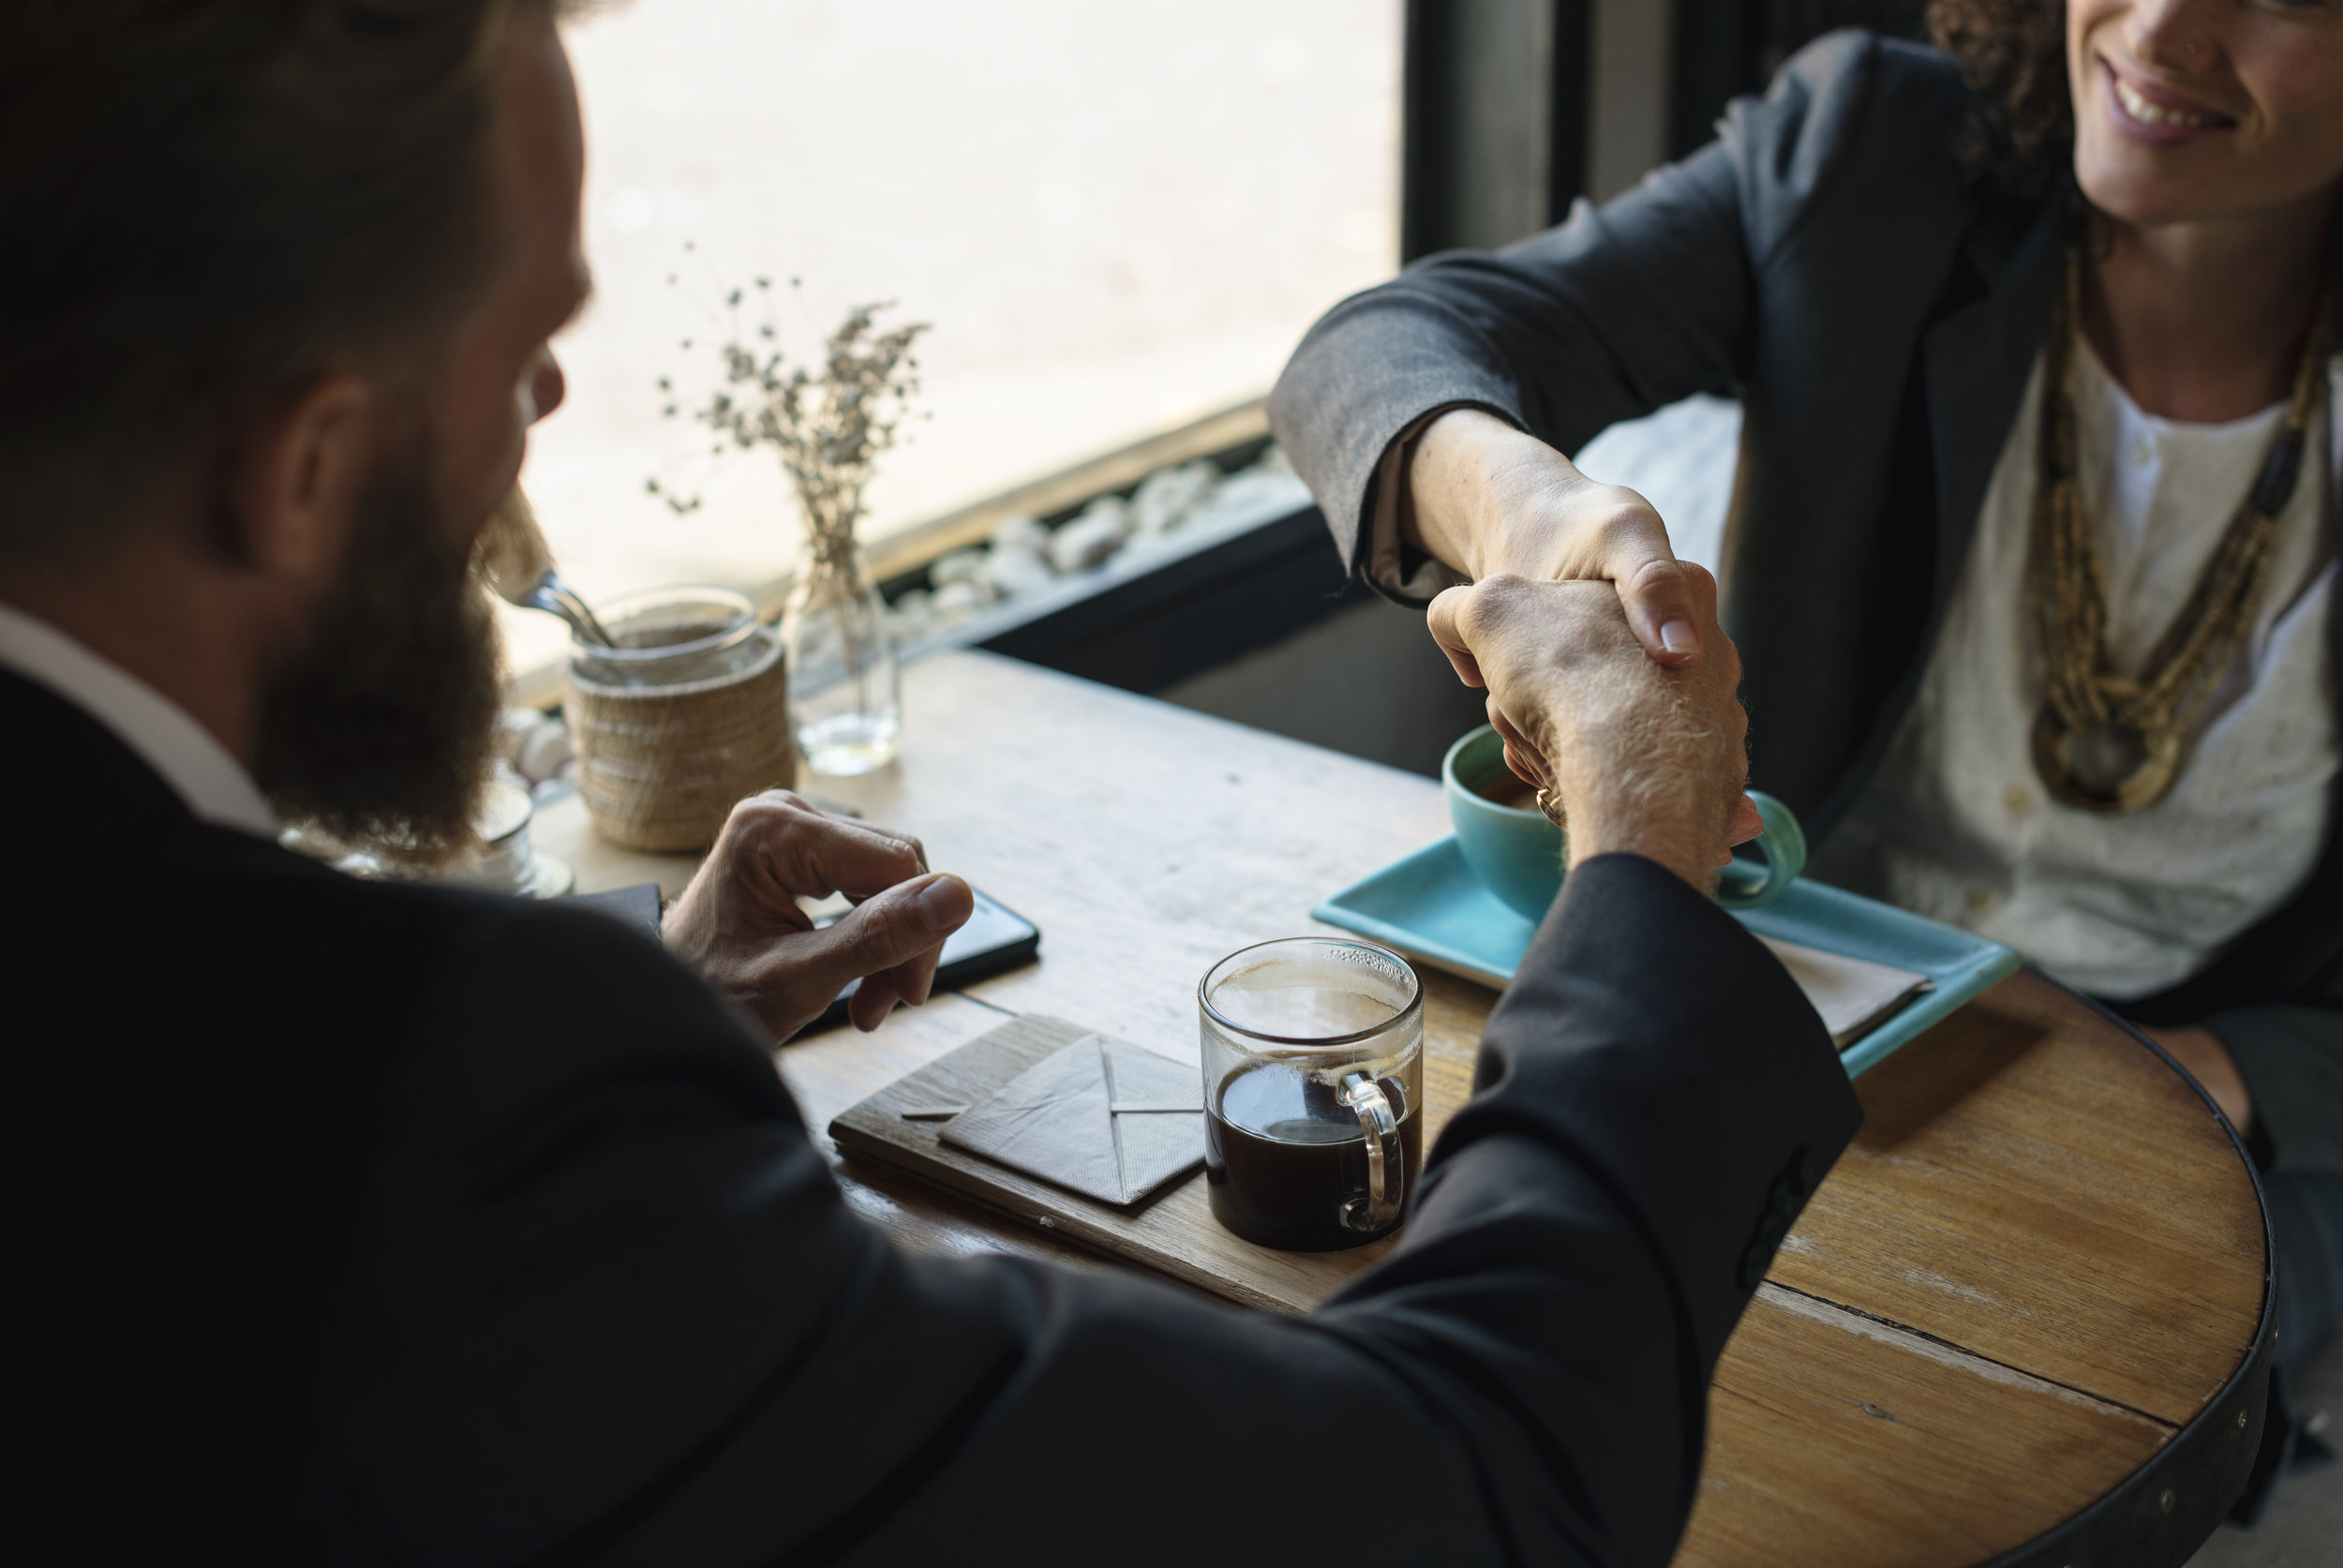 Prenuptial Agreements - A prenuptial agreement (known as an antenuptial agreement in Minnesota) is a contract entered into between two individuals before they get marred. A main objective with a prenuptial agreement is to protect assets in the event of a divorce.